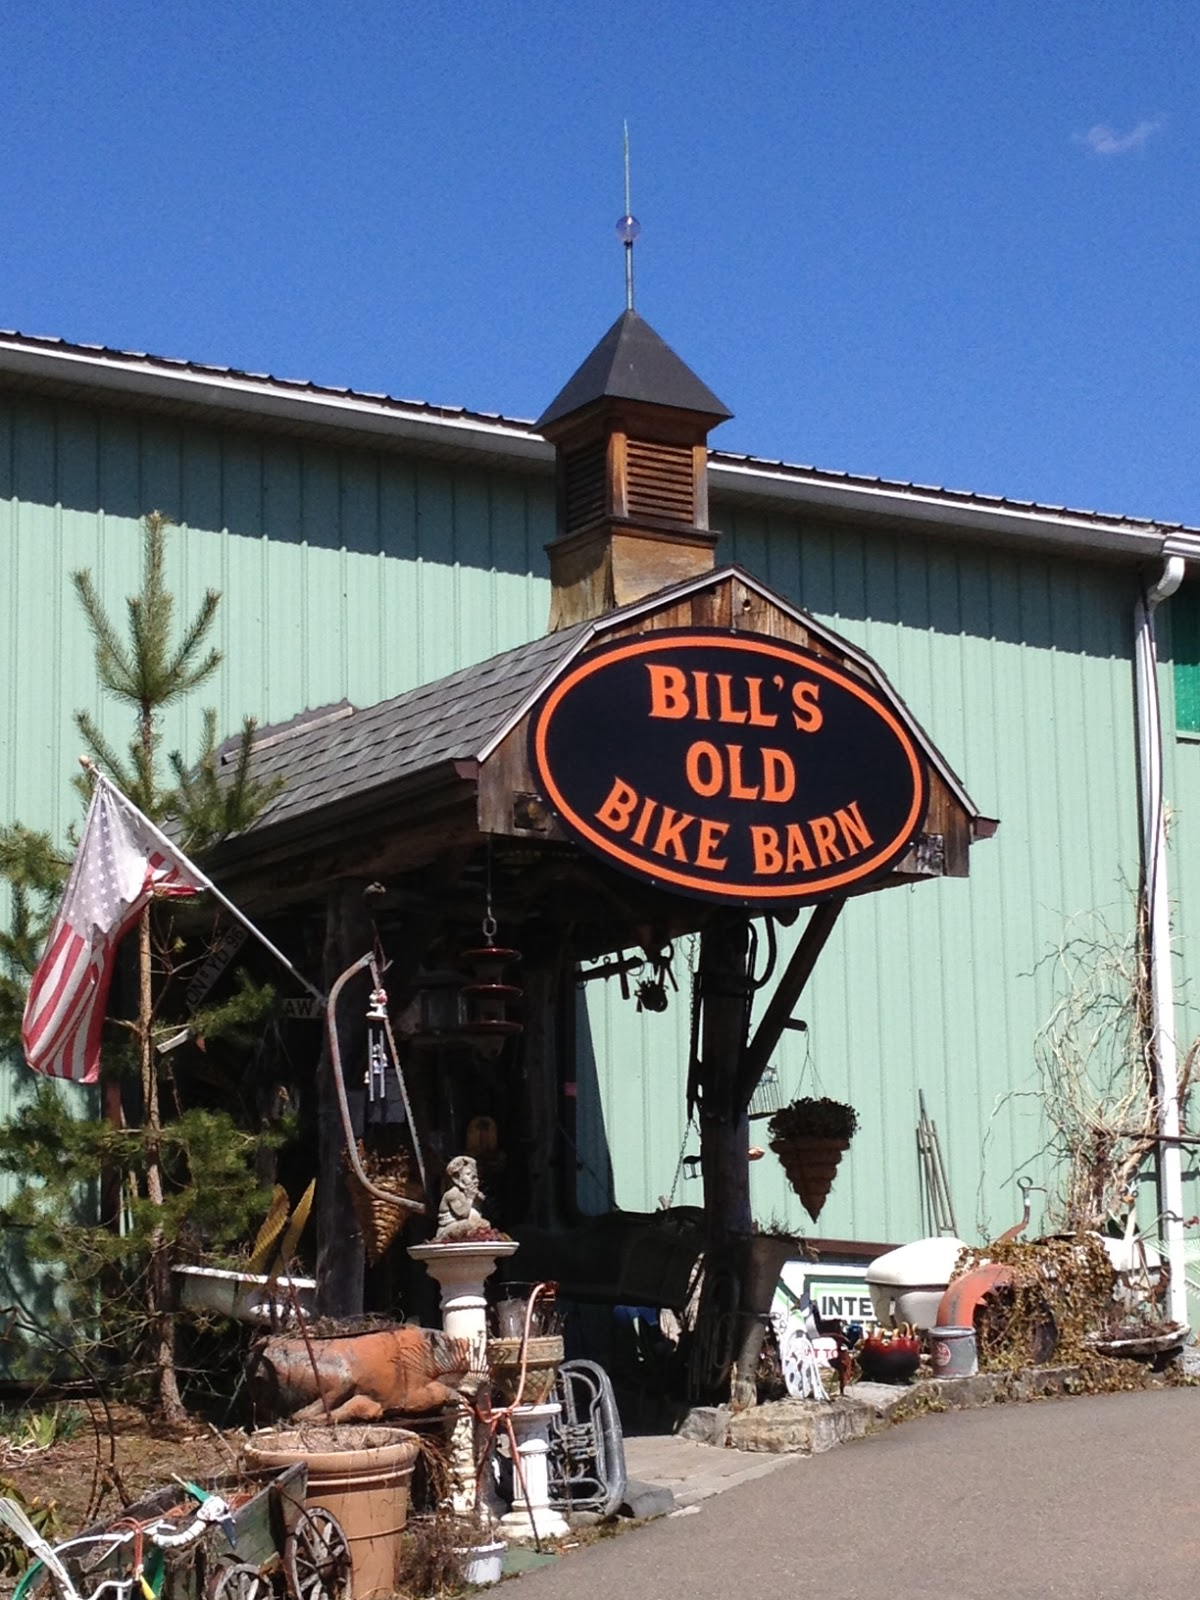 Nov 04,  · Great visit at Bills Bike Barn with lots of old and new Harley's and much other Americana. Well worth the stop and modest admission fee ($5). Thank jimsavage15/5().